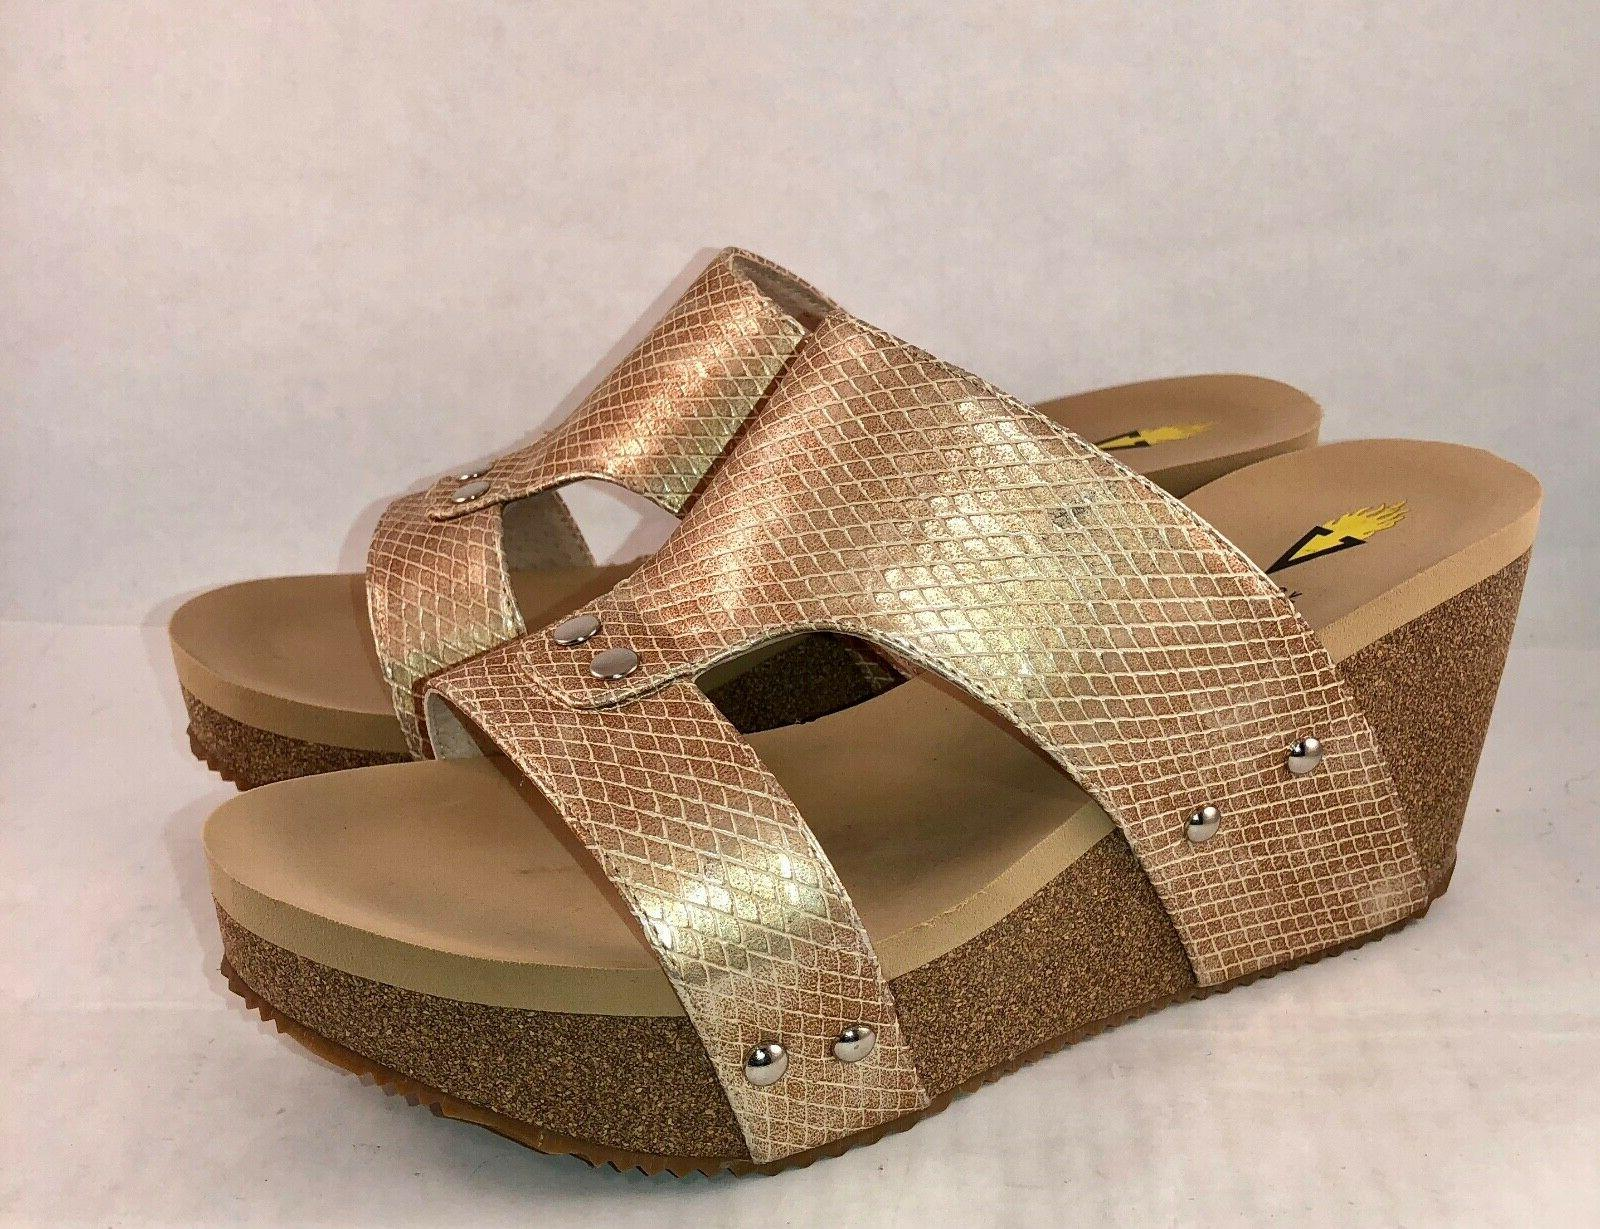 Volatile Wedge Sandals Sz 10M Metallic/Gold